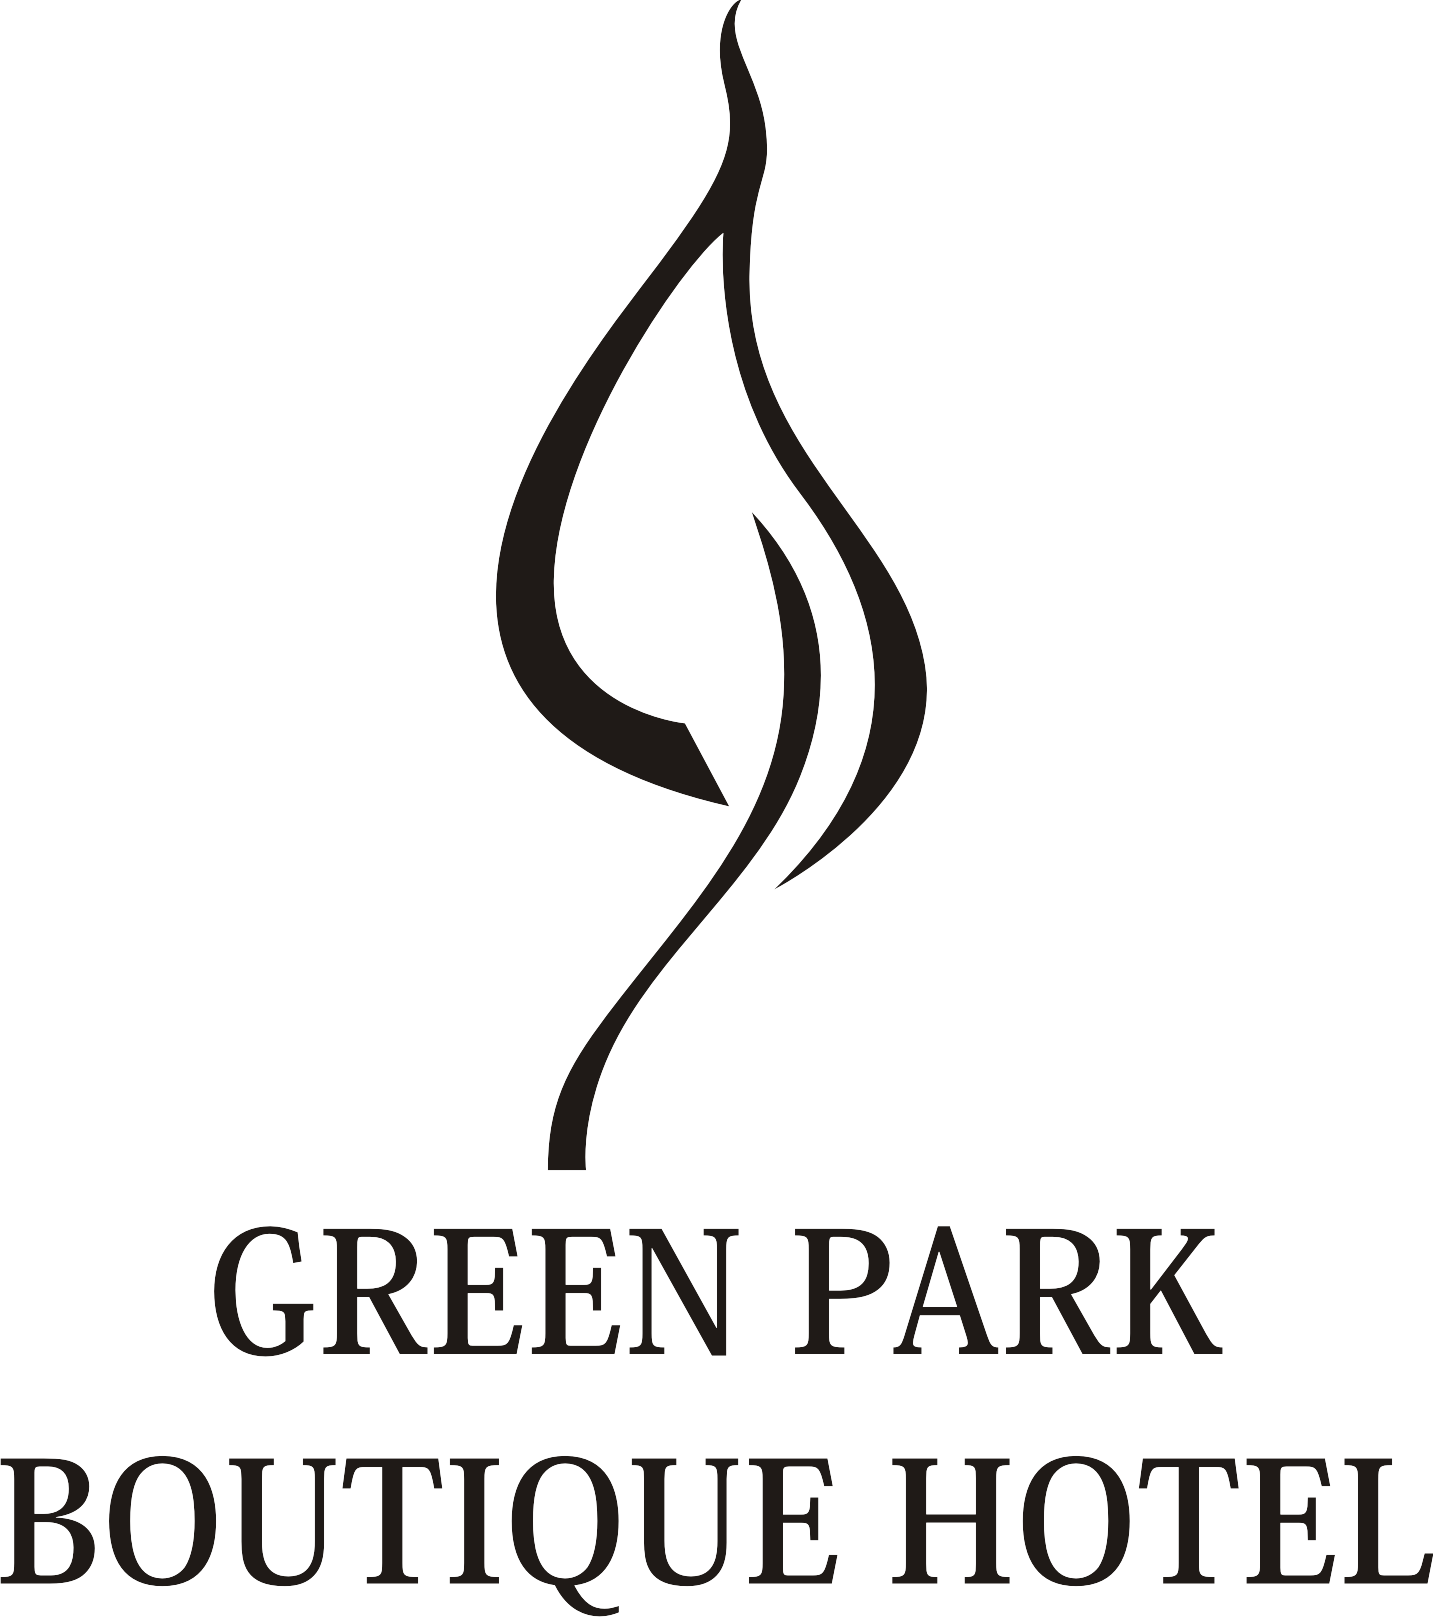 Green Park Boutique Hotel